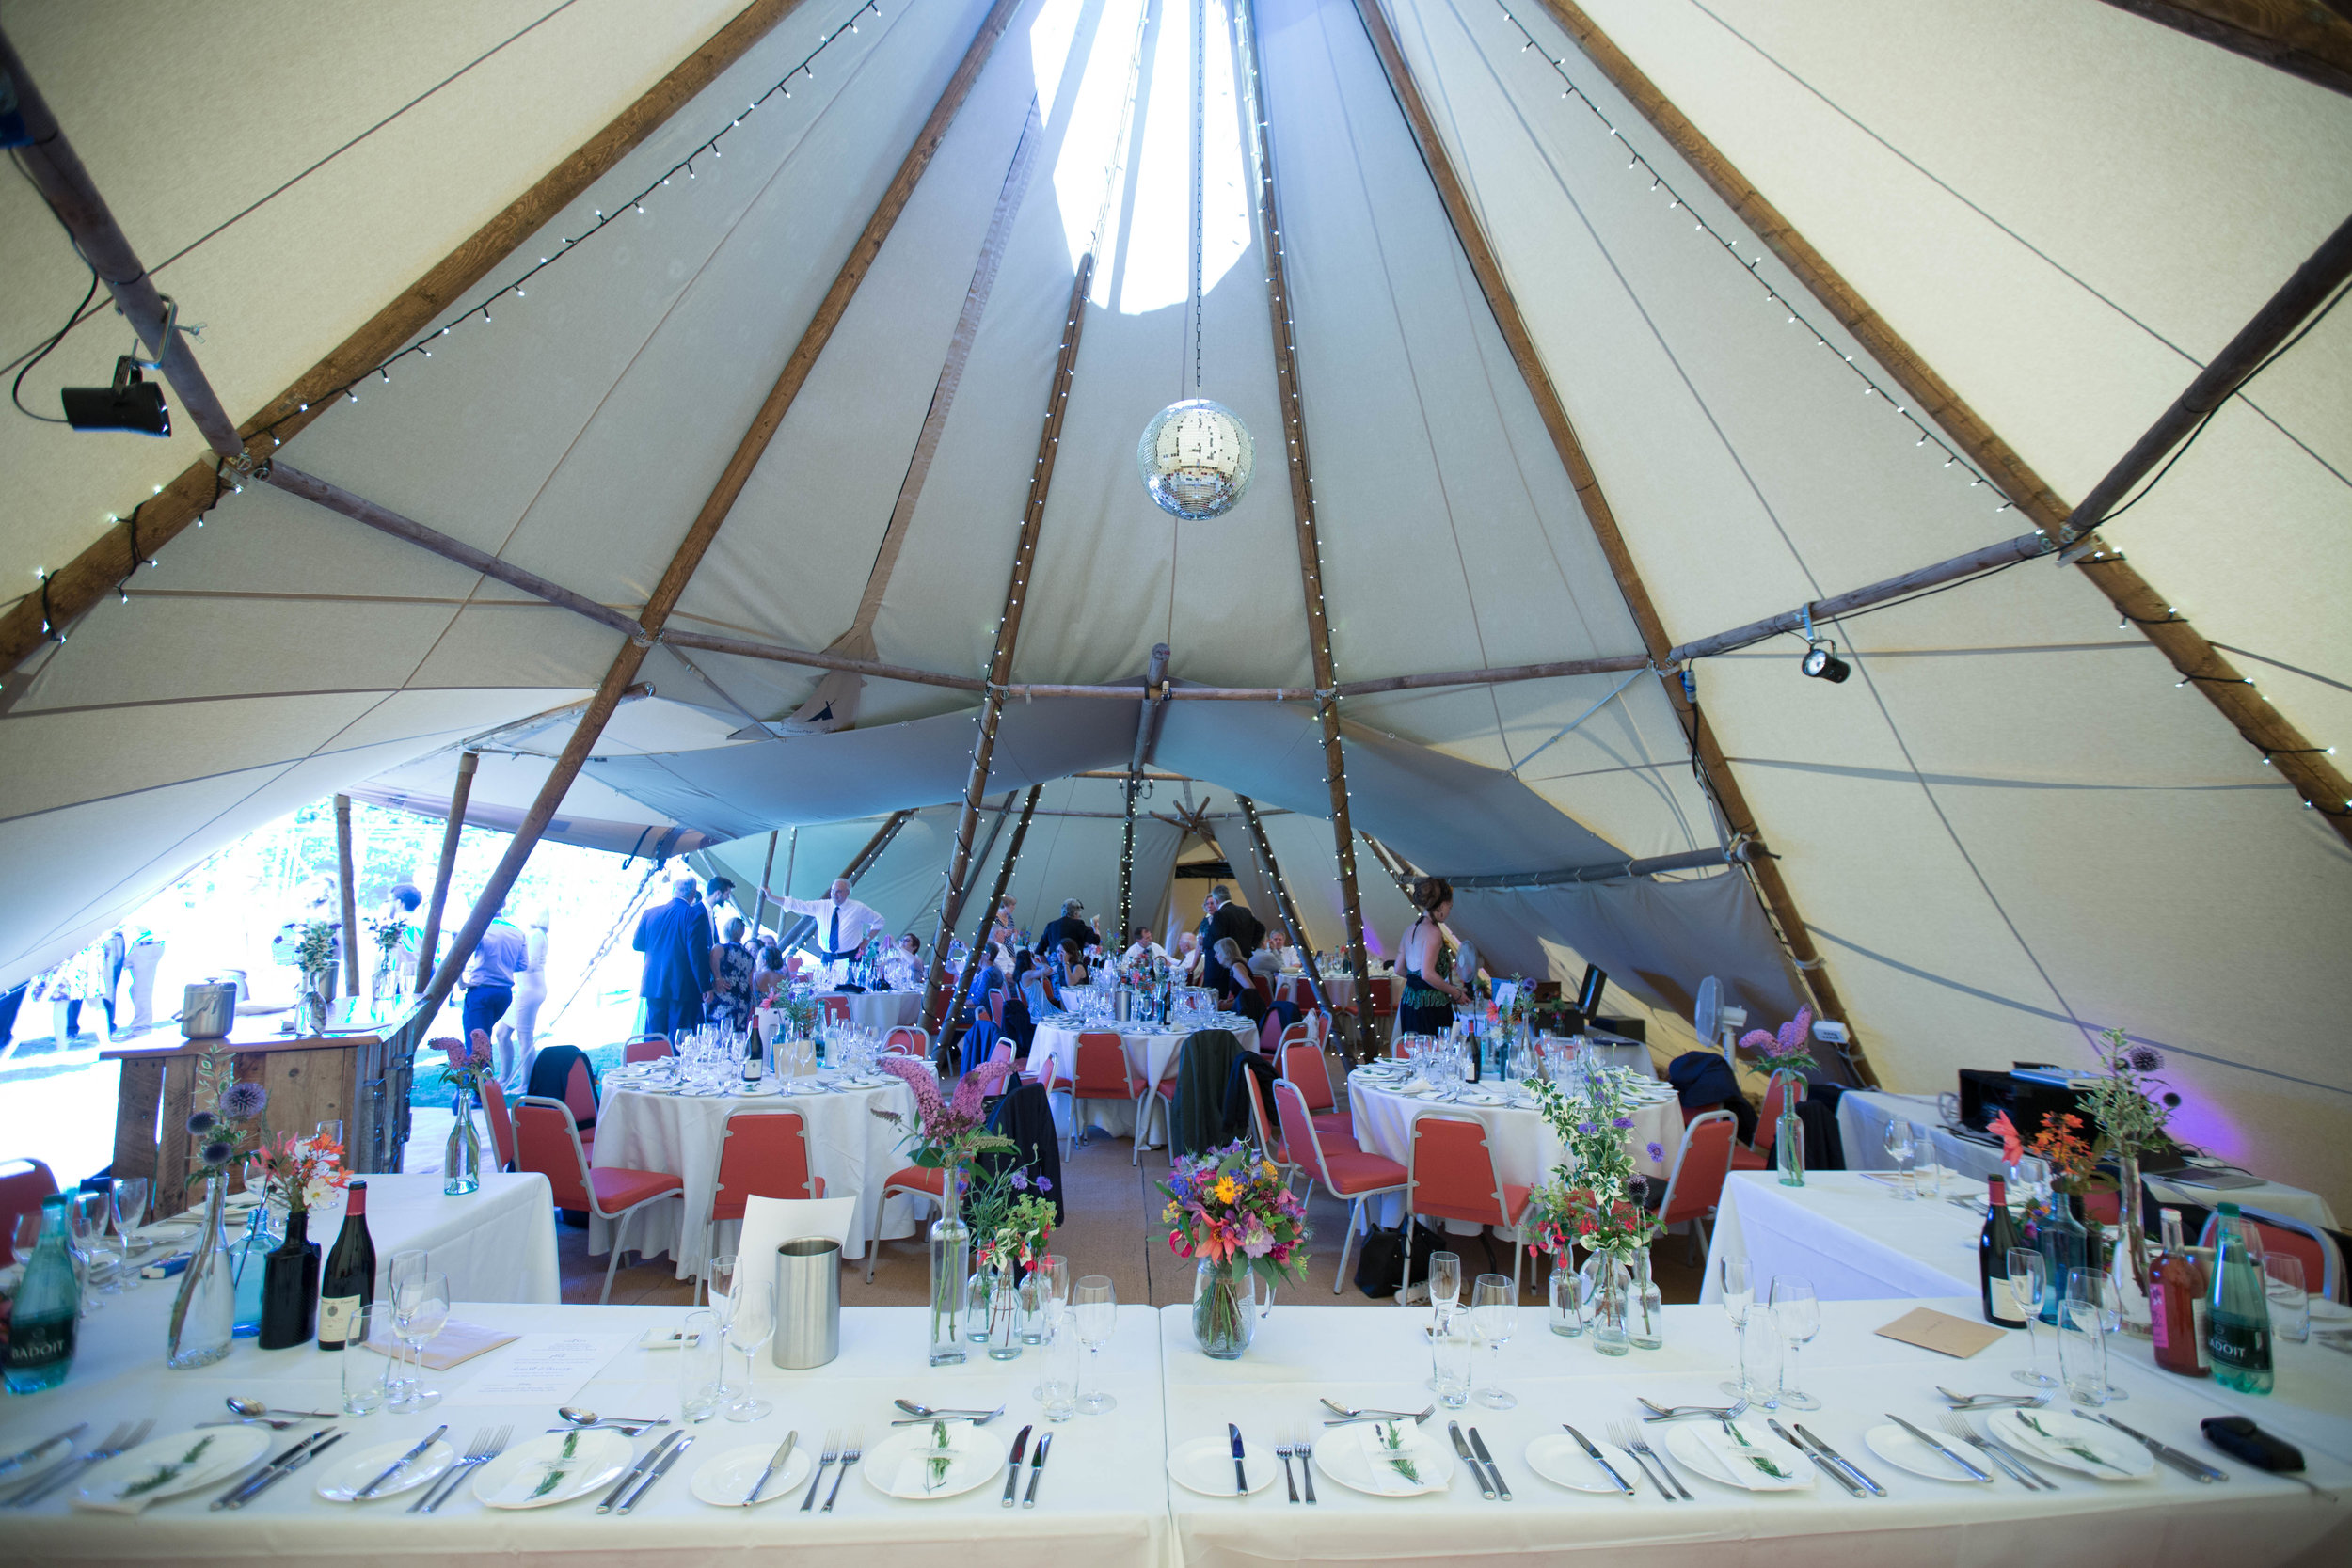 bedfordshire-tipi-rustic-summer-wedding-delirious-58